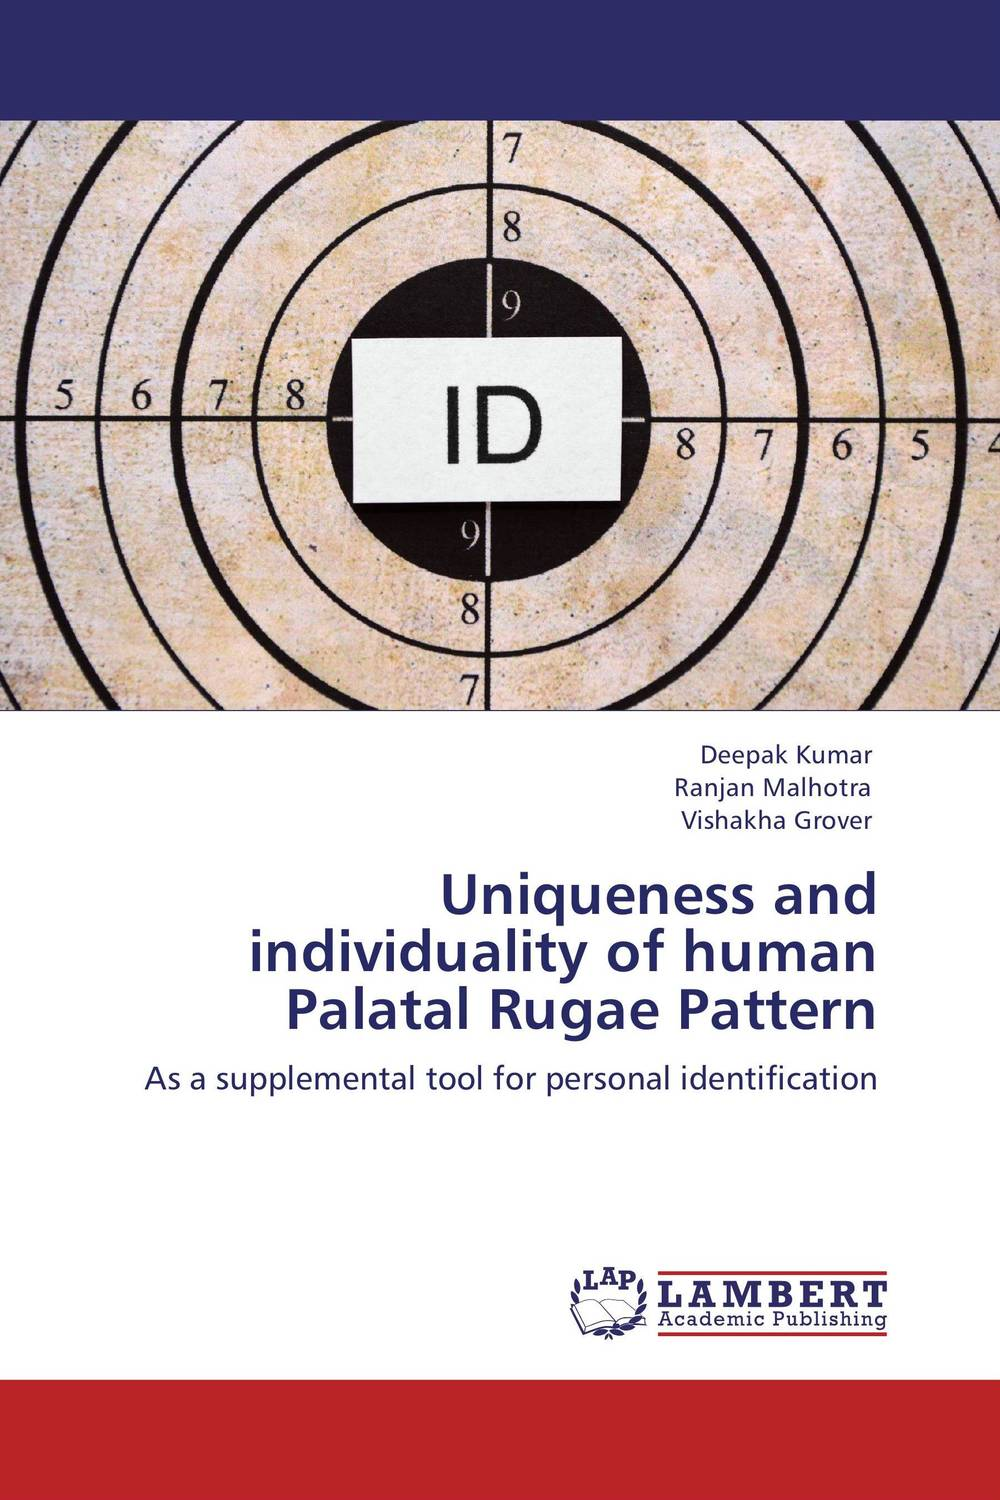 Uniqueness and individuality of human Palatal Rugae Pattern belousov a security features of banknotes and other documents methods of authentication manual денежные билеты бланки ценных бумаг и документов